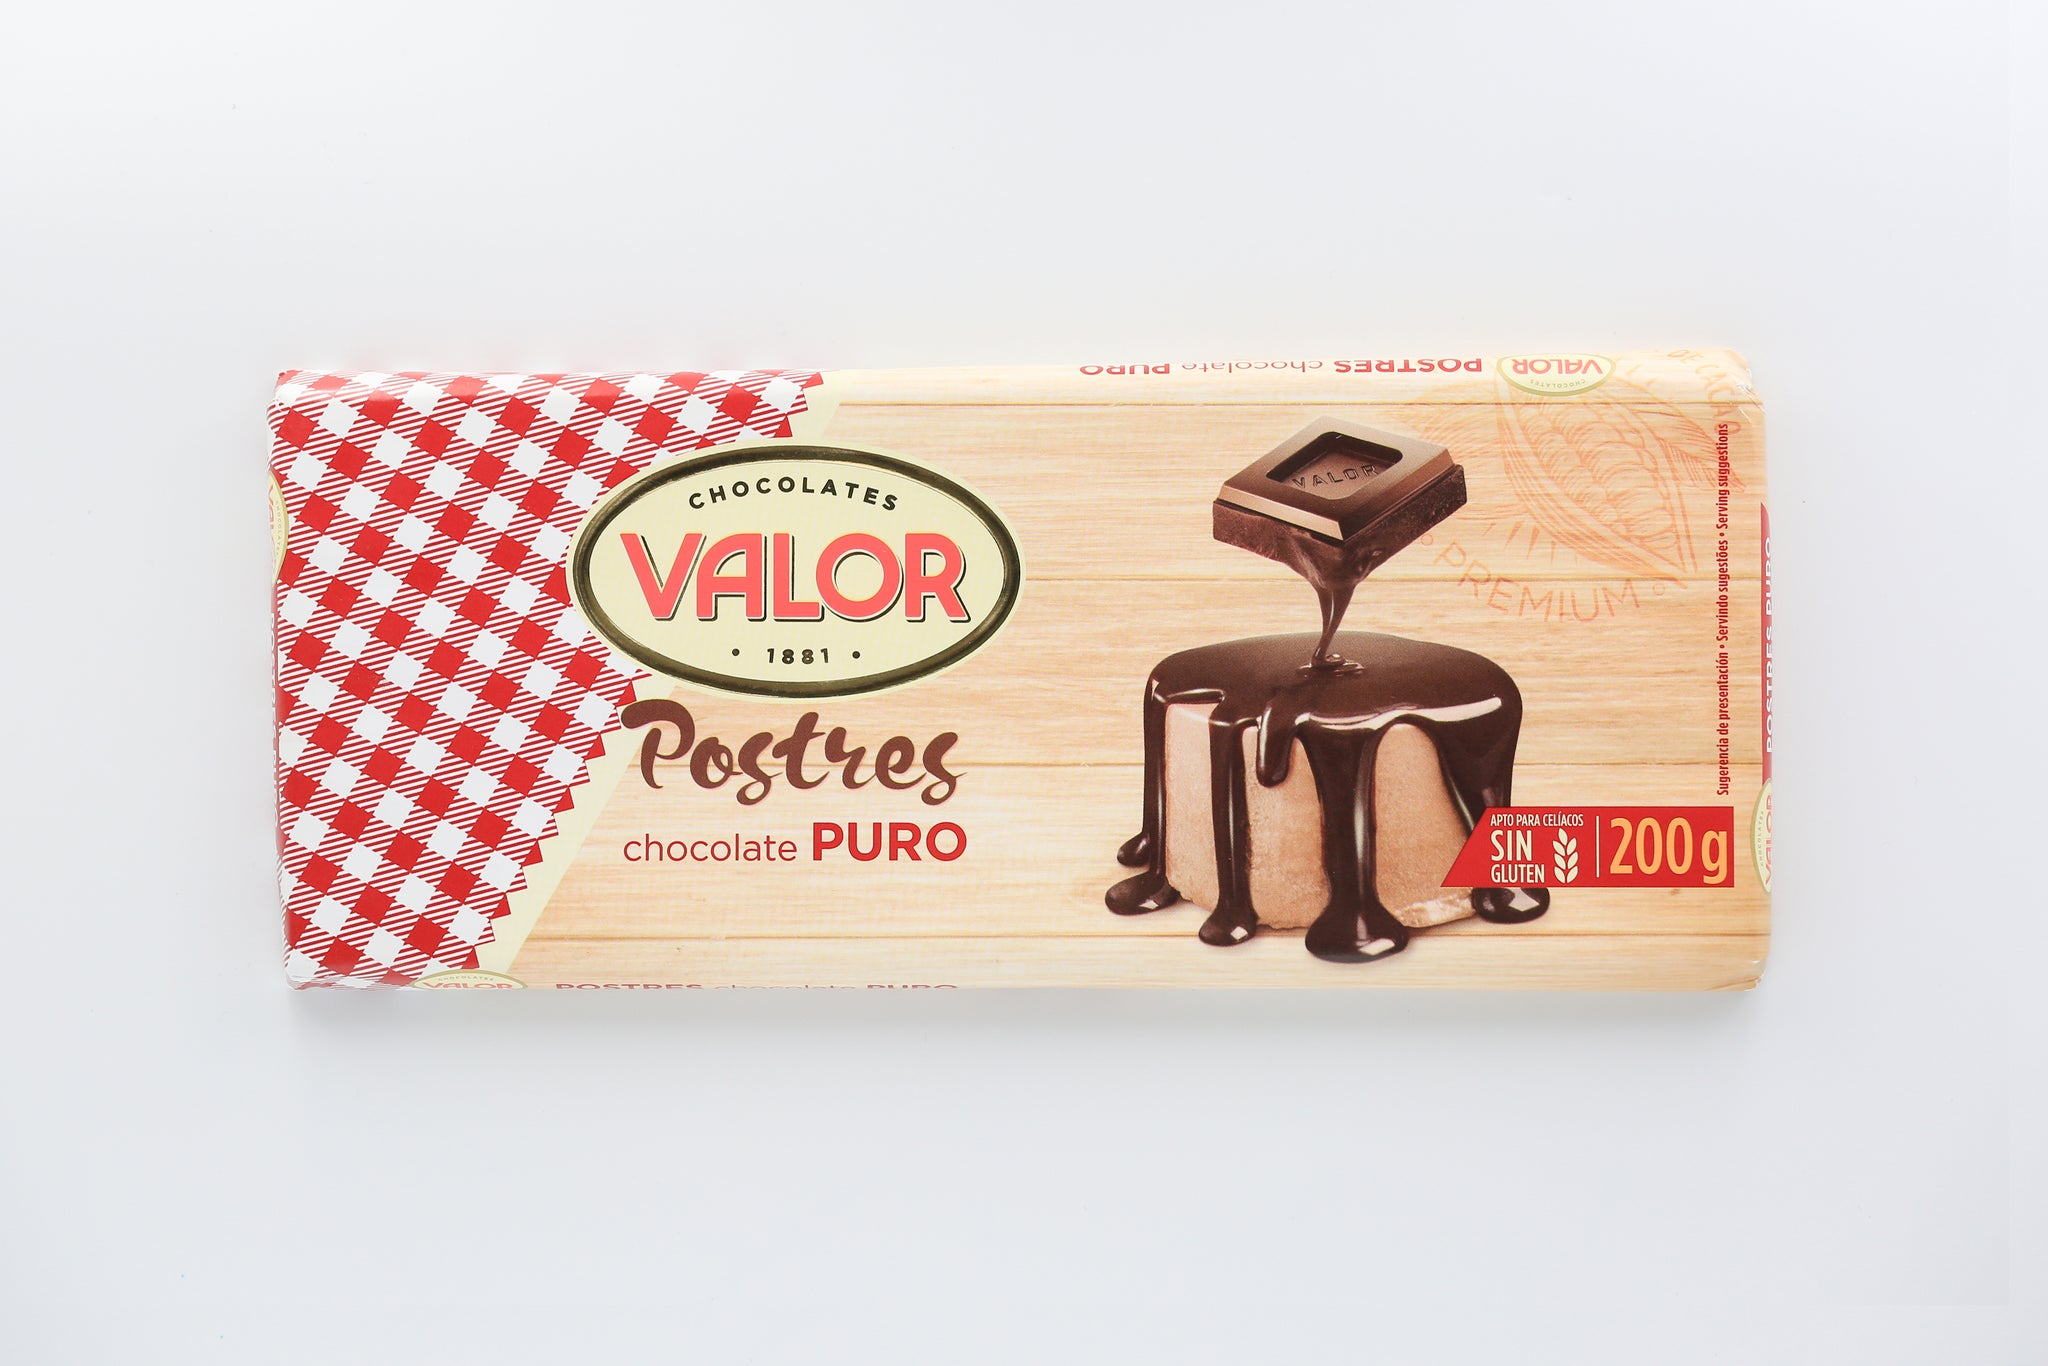 Hot Chocolate VALOR for Desserts 200g